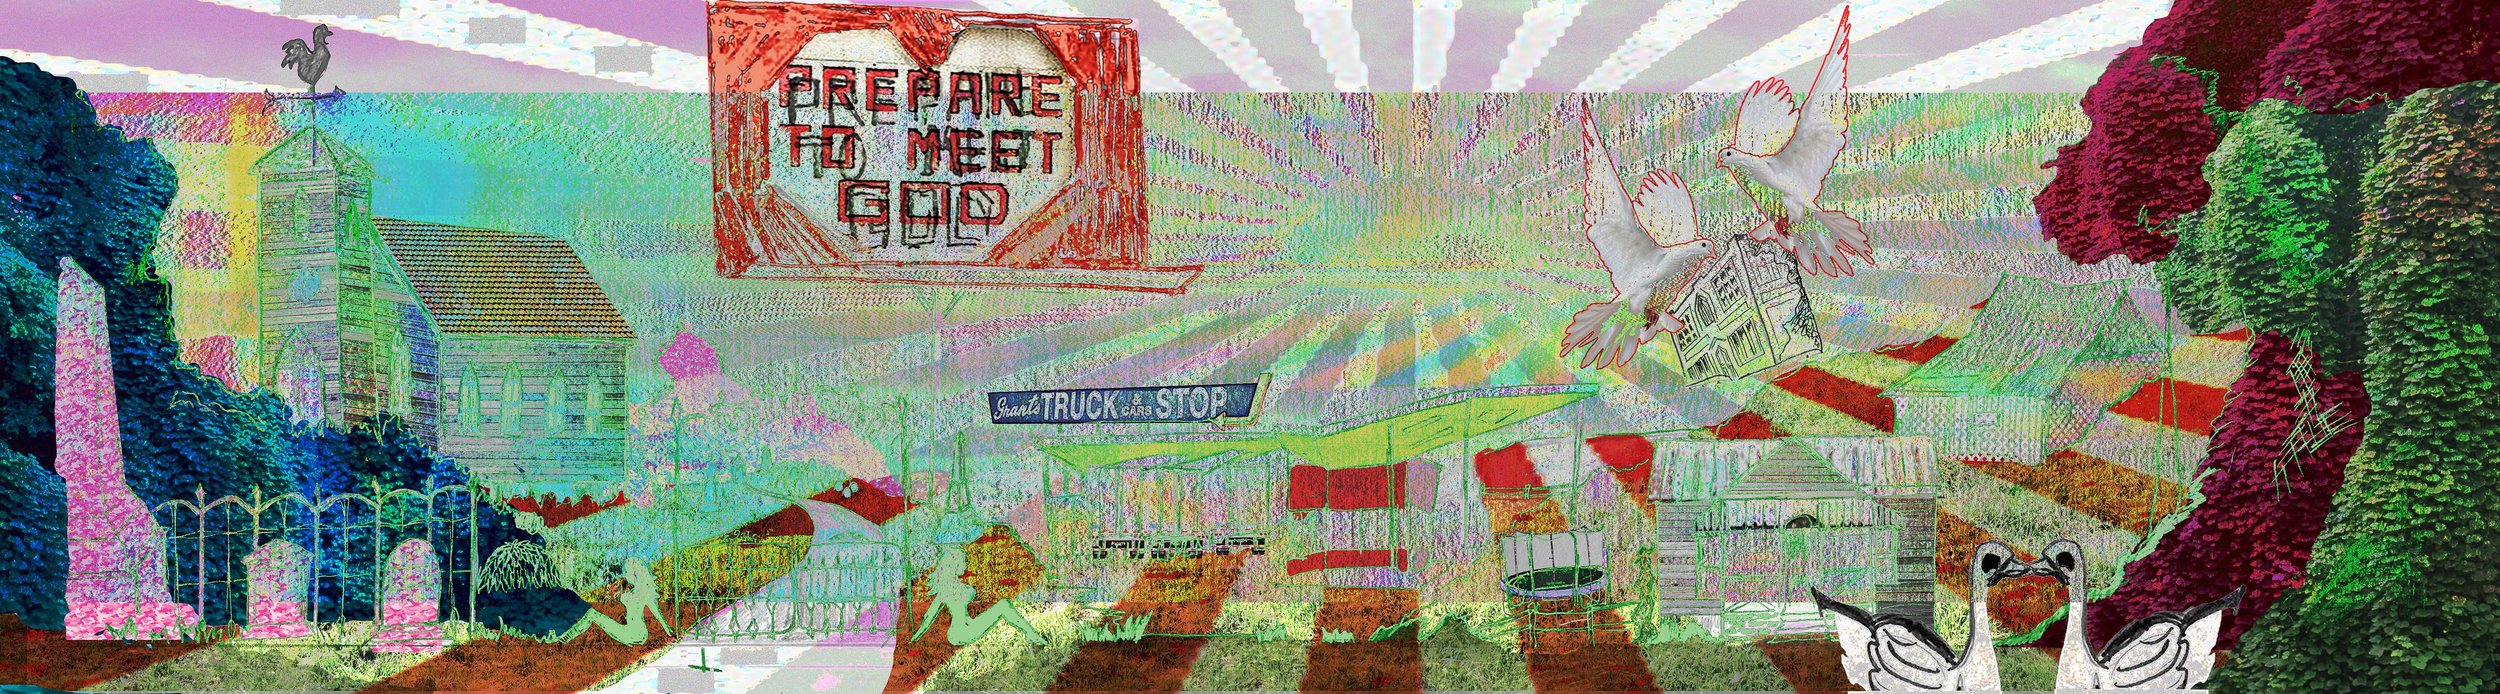 My group & I, WSW Collective, will be giving a 5-minute presentation for an immersive installation of a digital glitch that we would like to exhibit in a gallery space at Western Michigan University, Grand Rapids during ArtPrize 9. The image above is Caro's drawing of a landscape which we colorized and crafted a glitch through using data bending software.